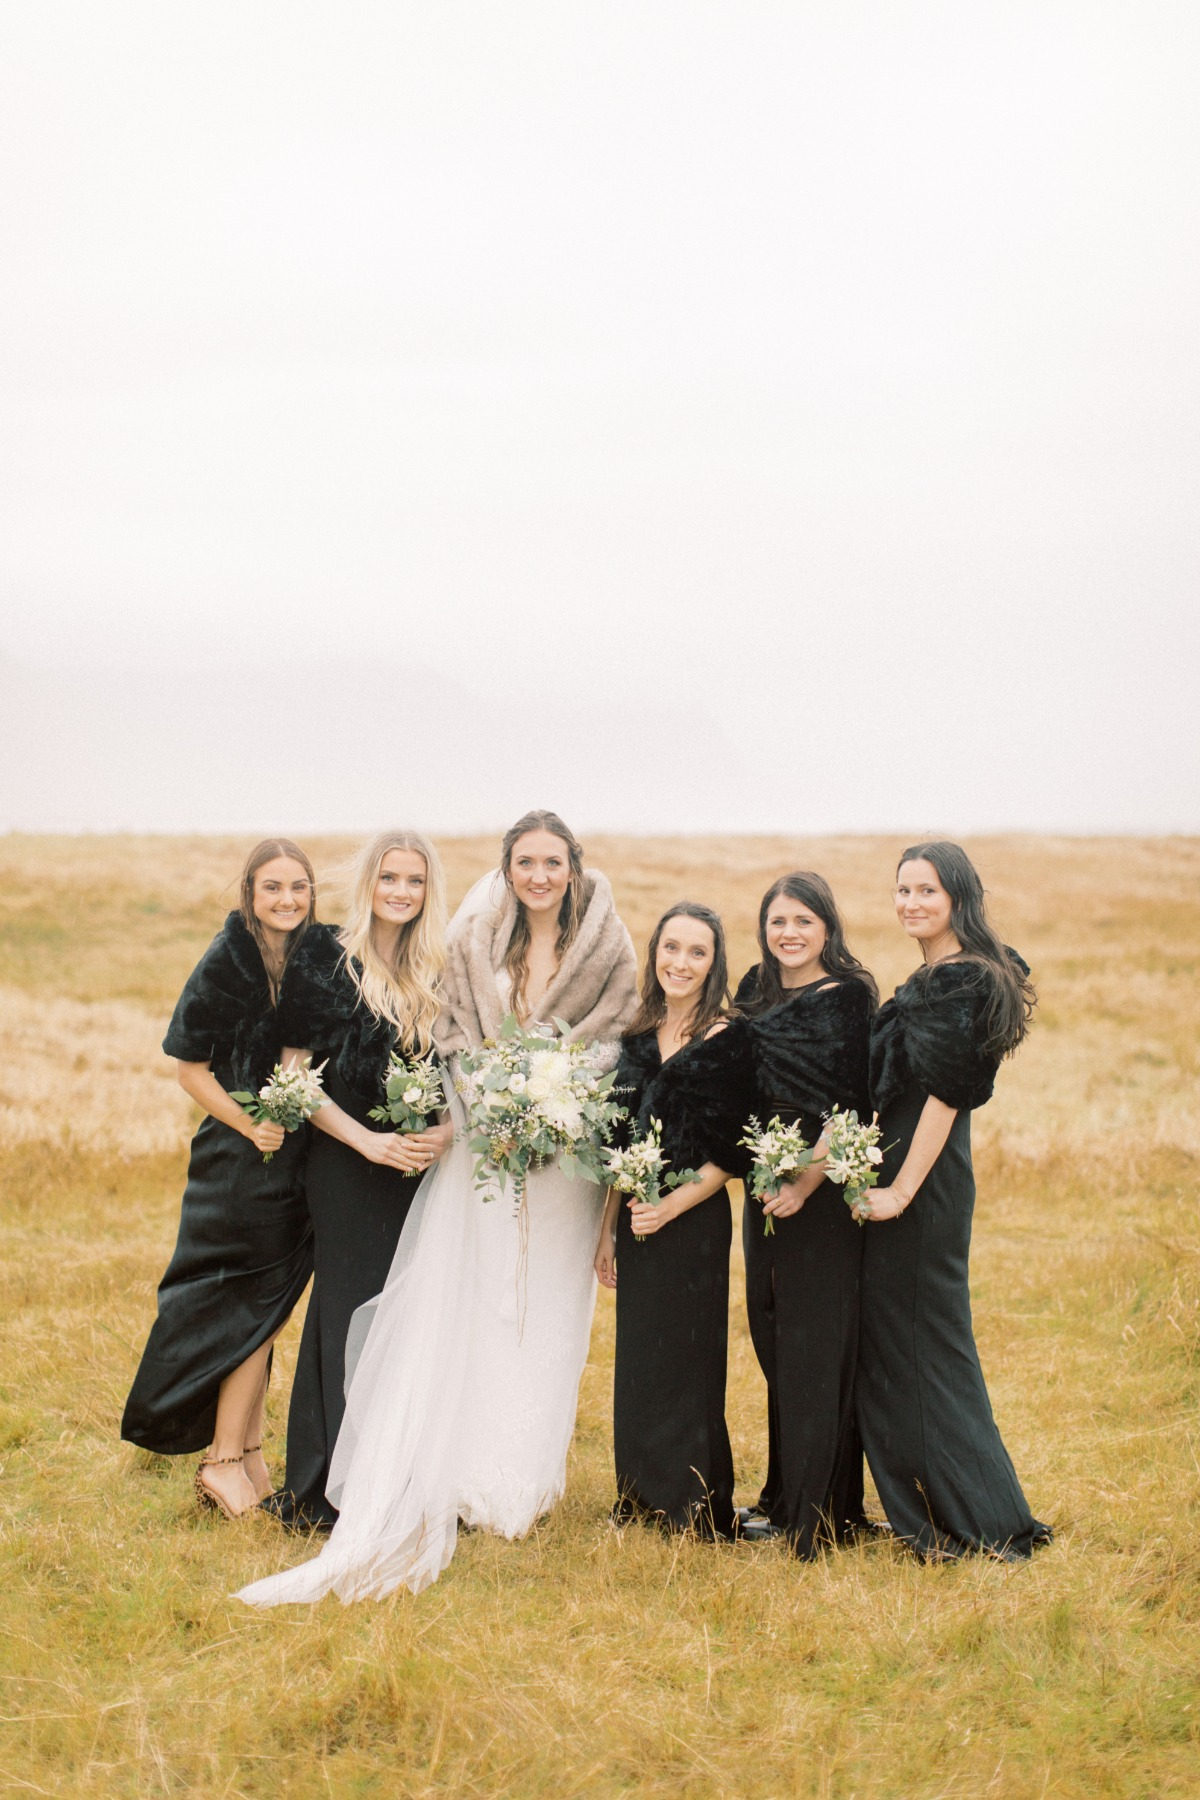 Bridesmaids at Iceland Destination wedding